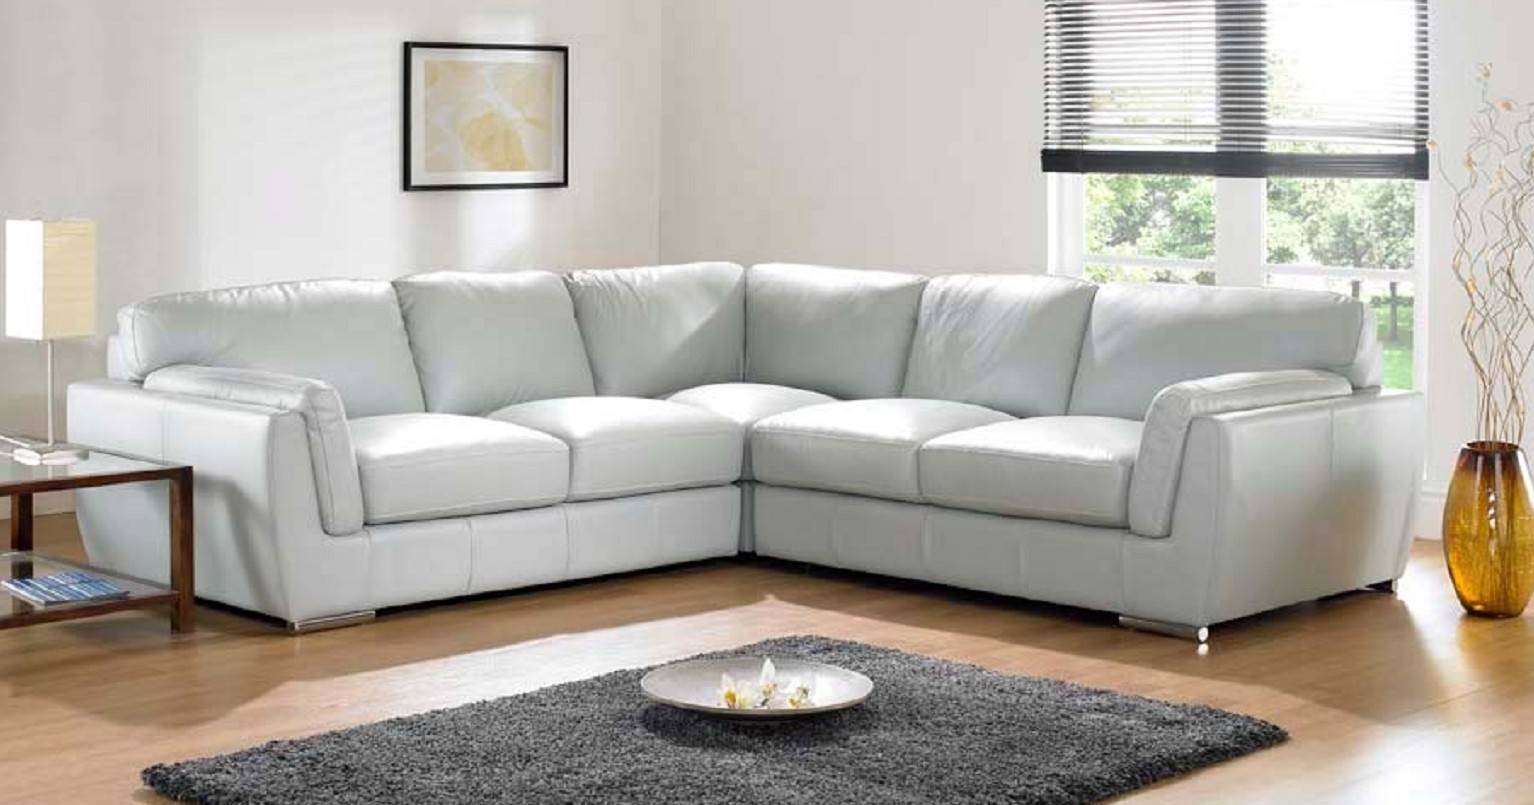 Leather Corner Sofa Grey | Tehranmix Decoration throughout White Leather Corner Sofa (Image 14 of 30)